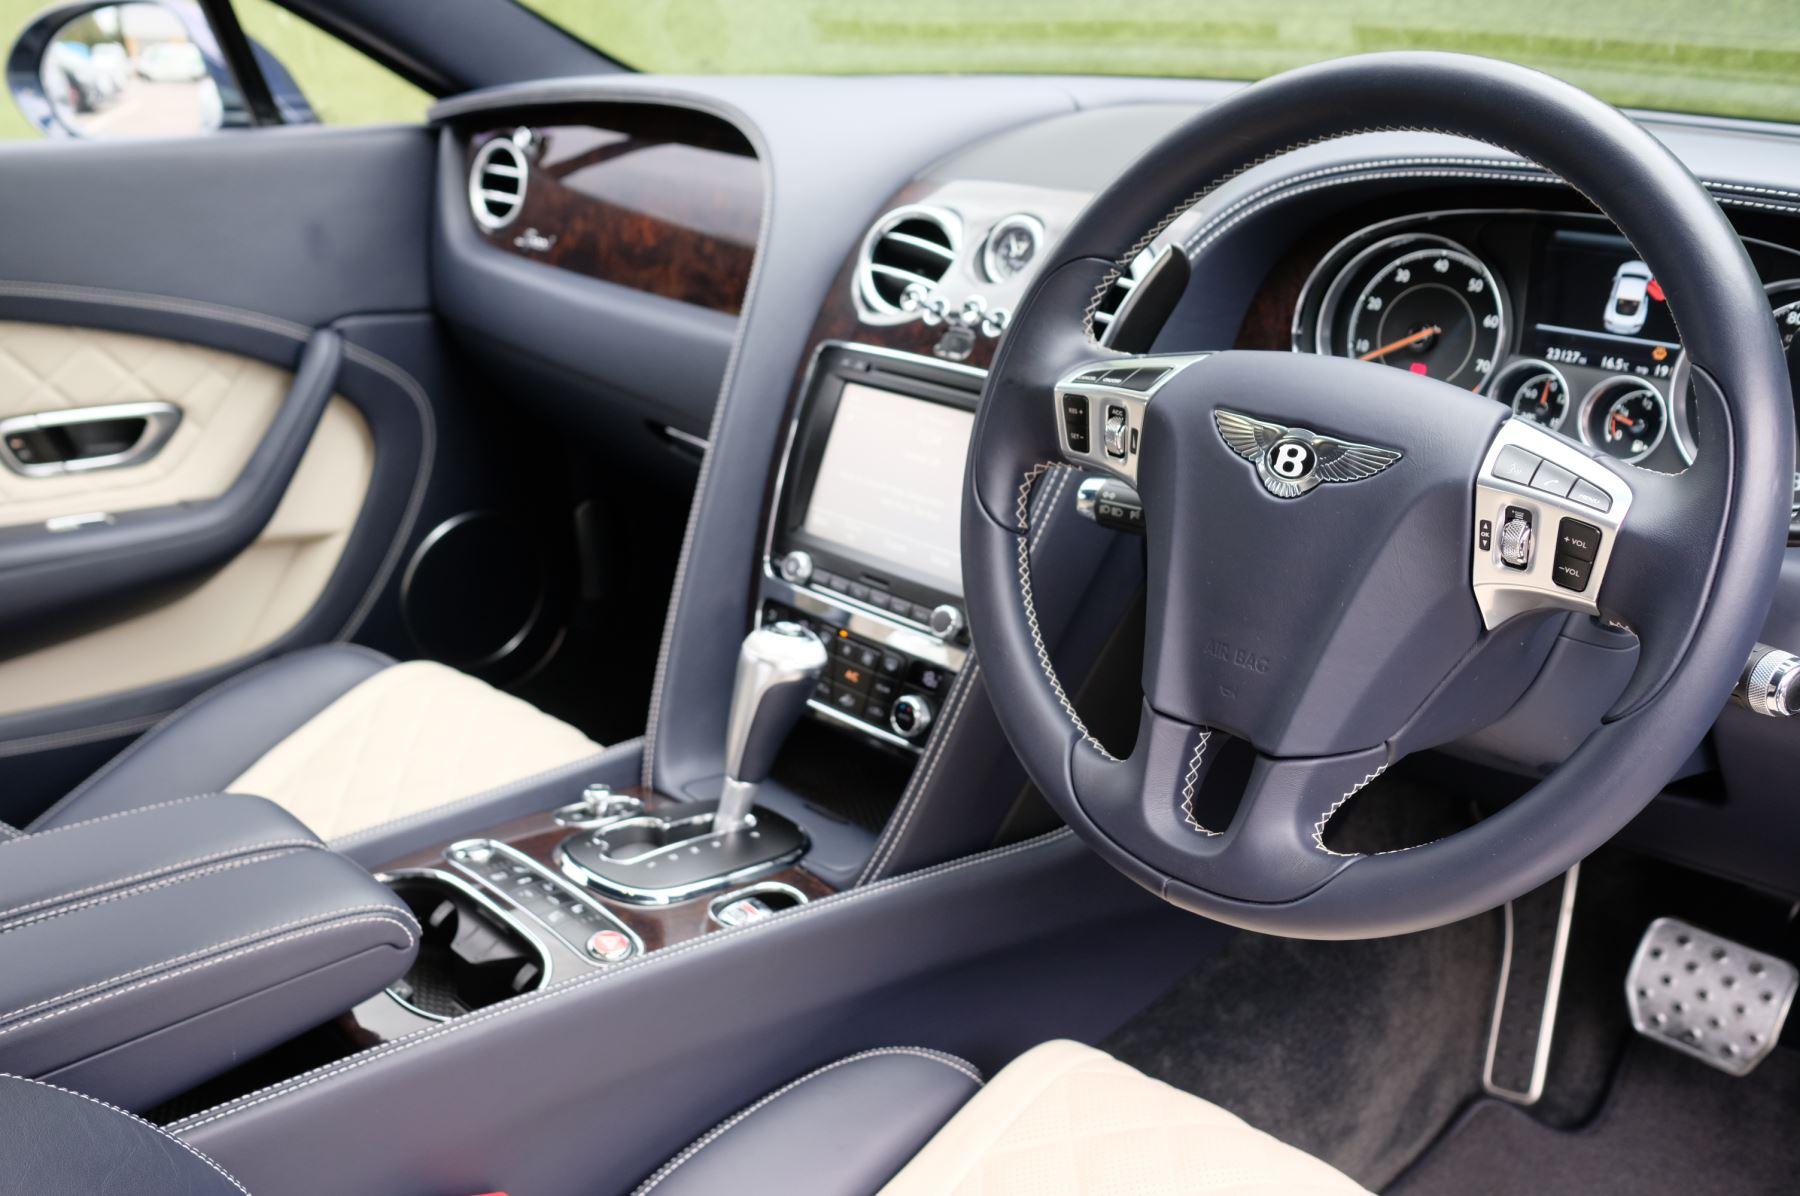 Bentley Continental GT 6.0 W12 [635] Speed - 21 inch Directional Sports Alloys - Ventilated Front Seats with Massage image 12